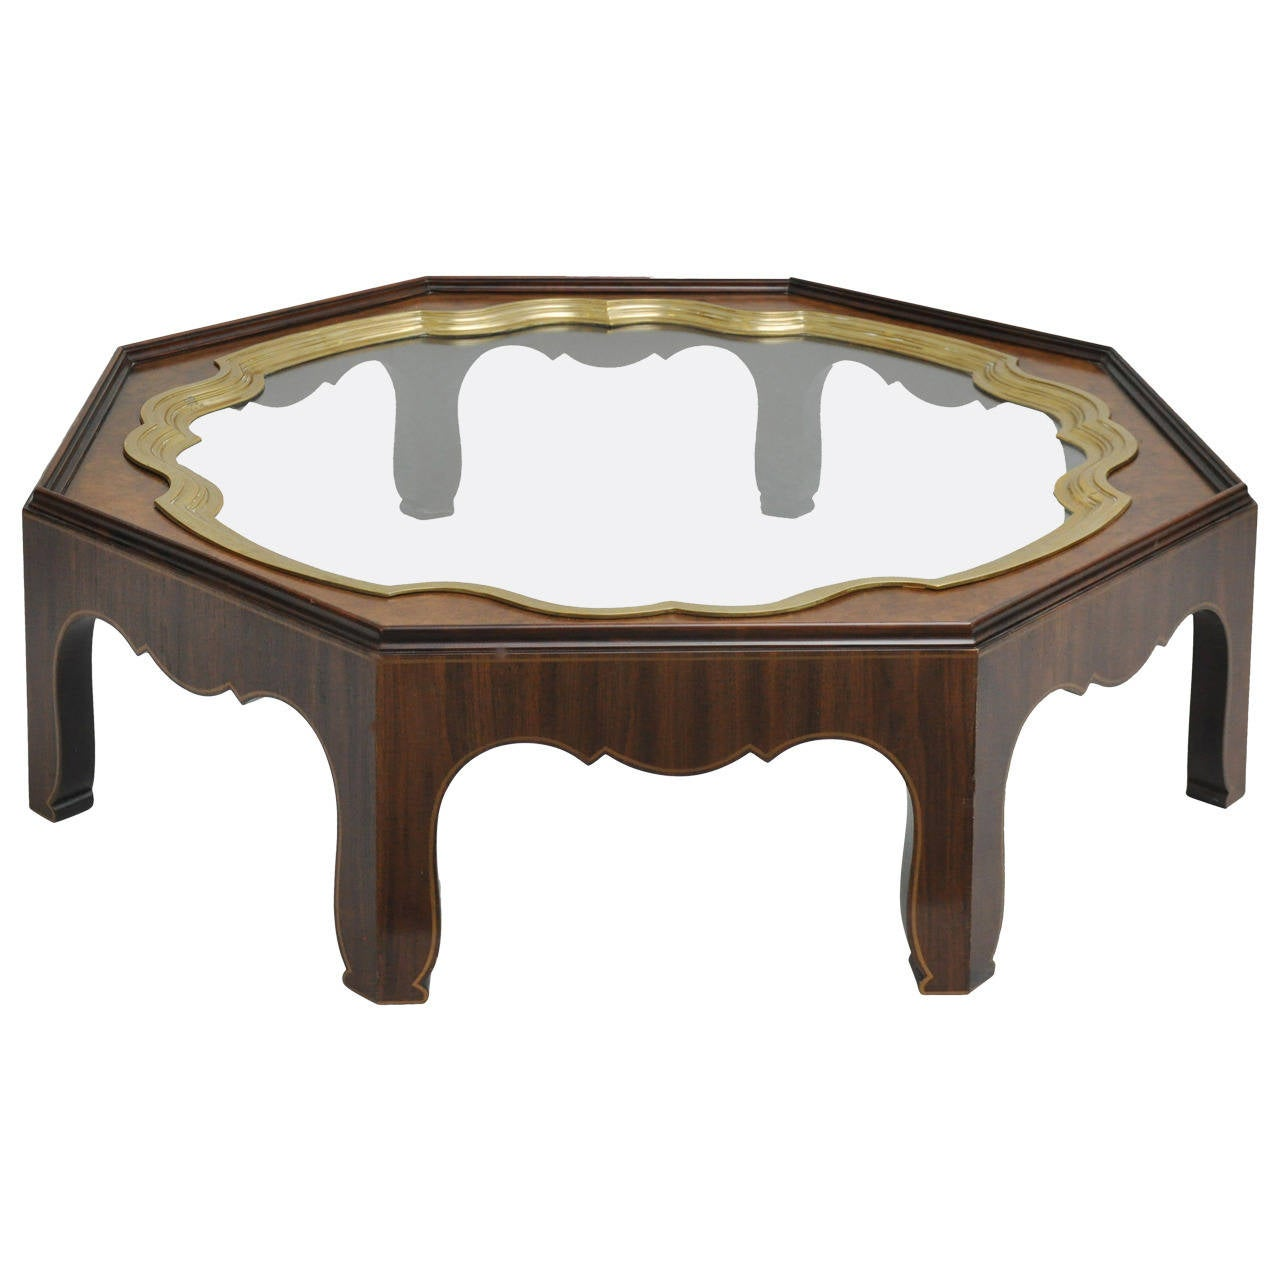 Baker furniture burled wood cocktail table brass and glass for Wood and glass cocktail tables